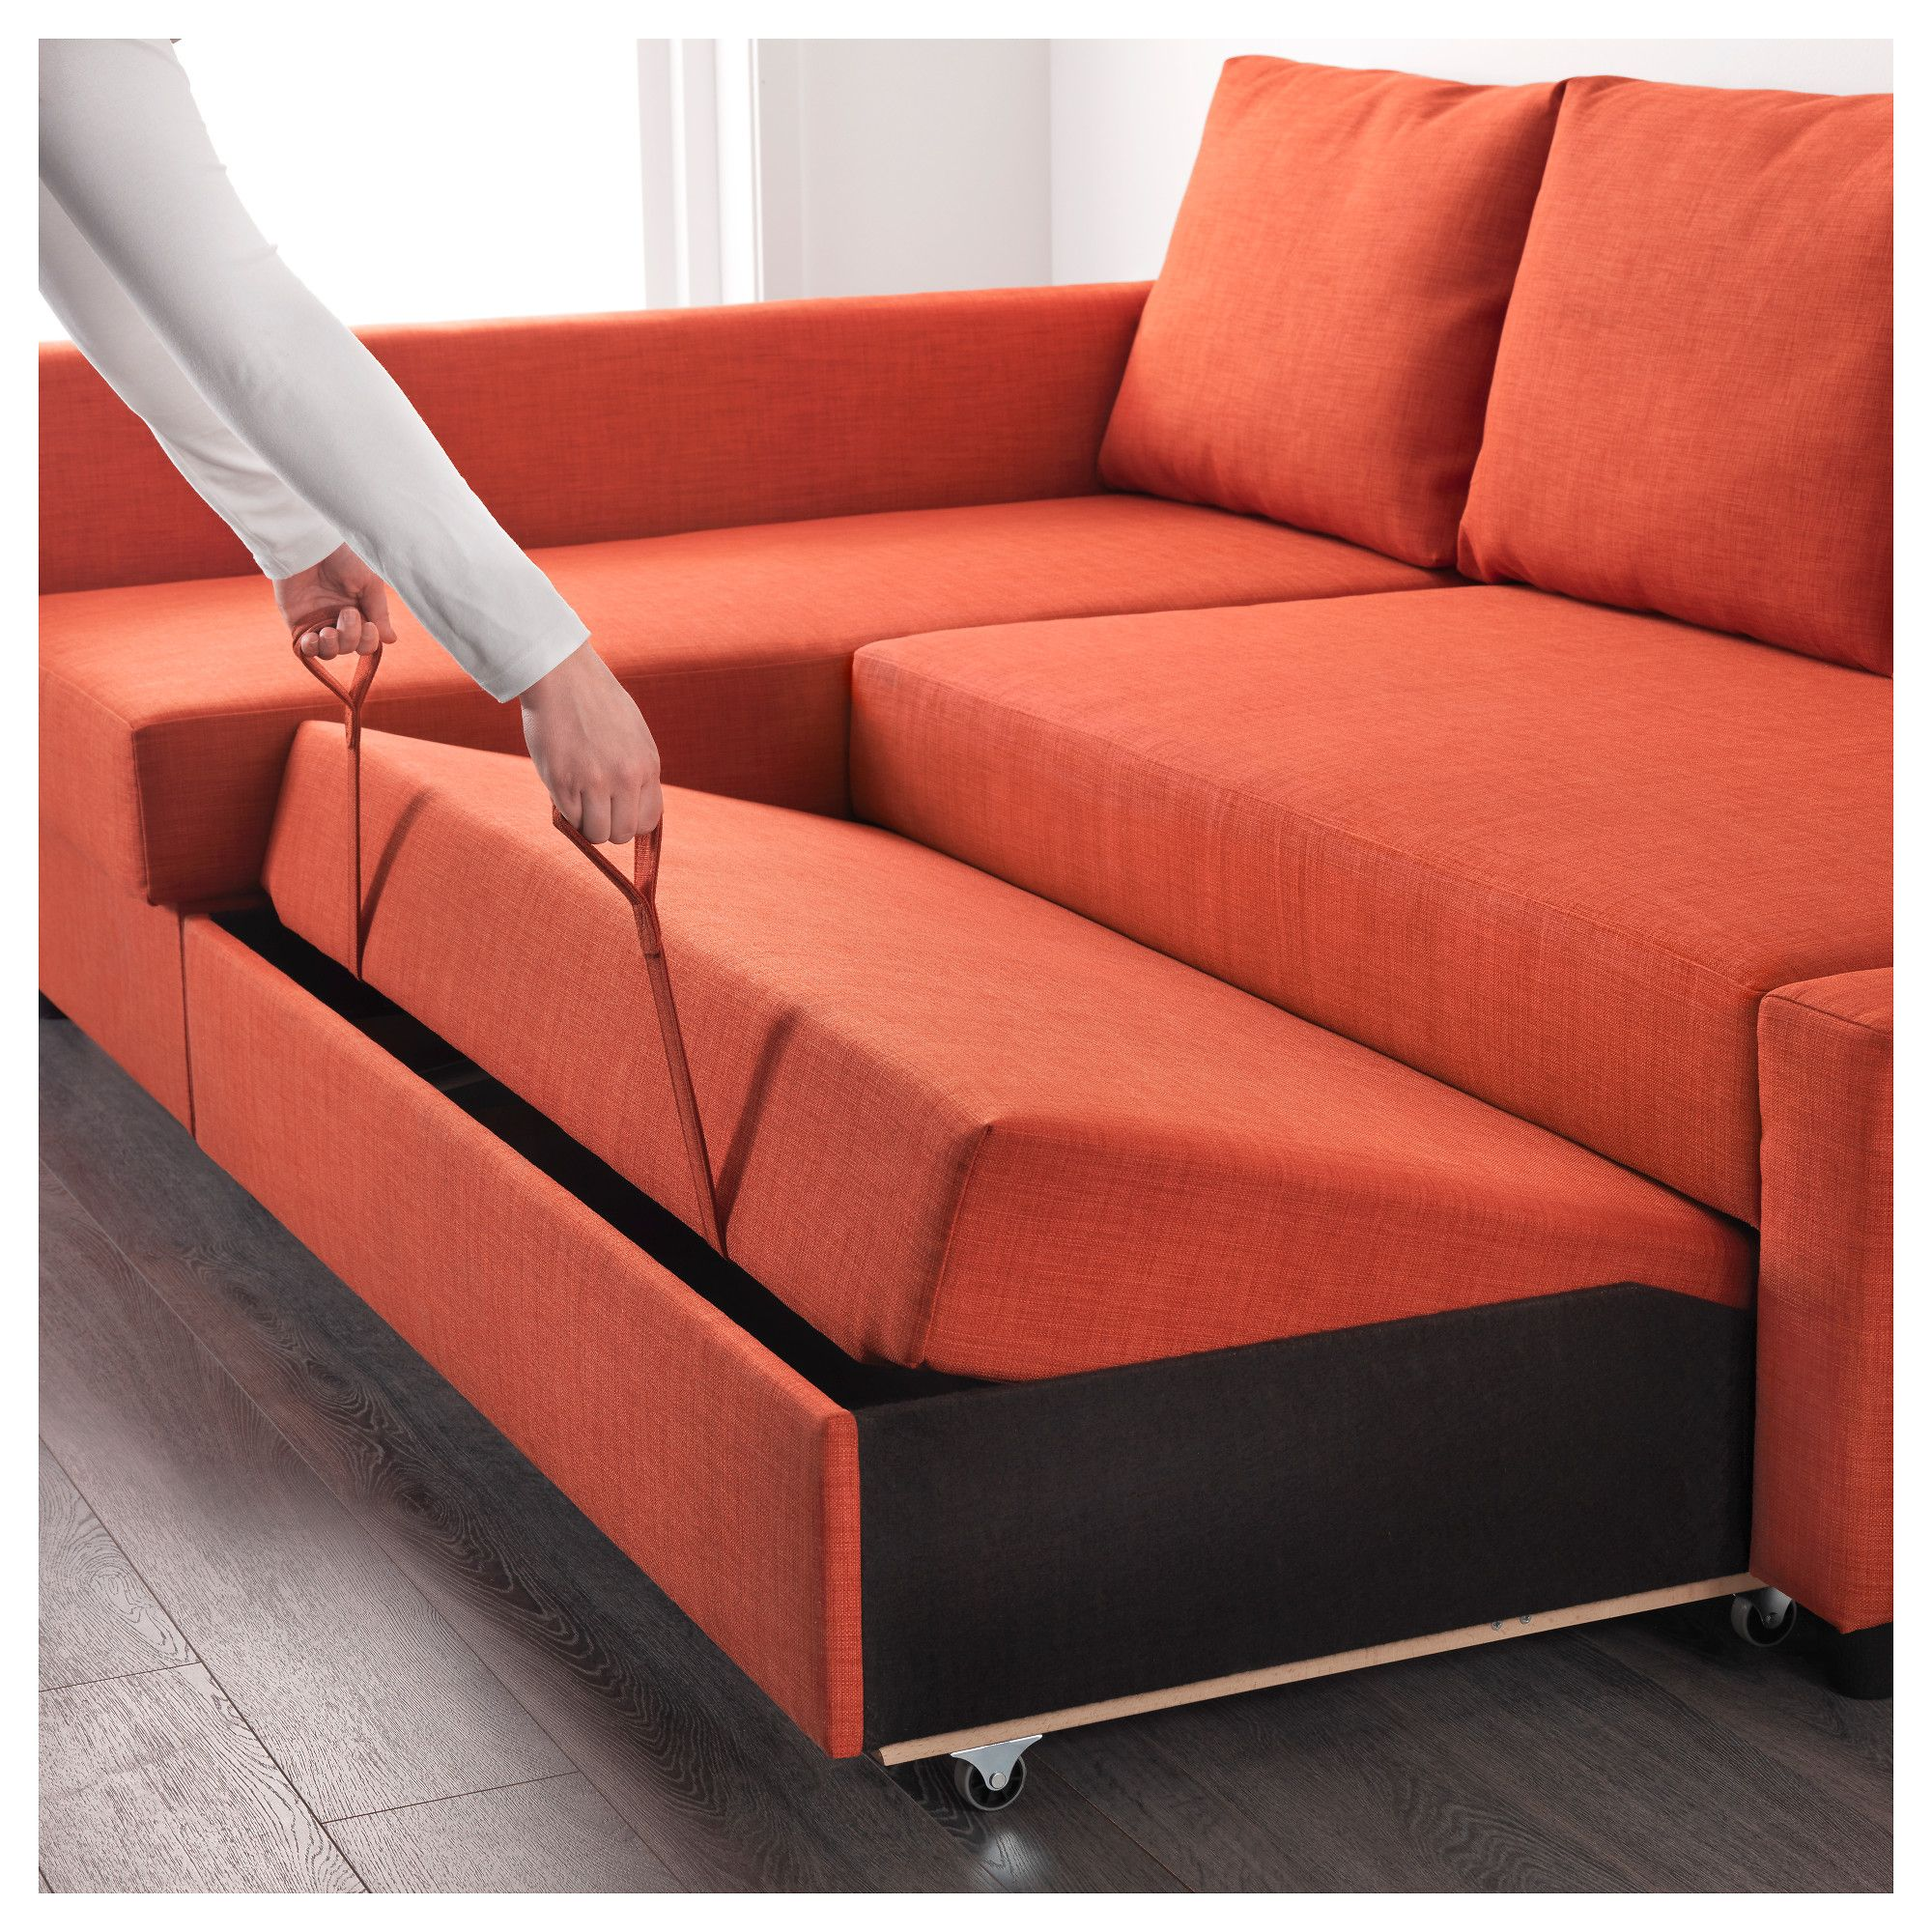 Ikea Friheten Corner Sofa Bed With Storage Skiftebo Dark Orange